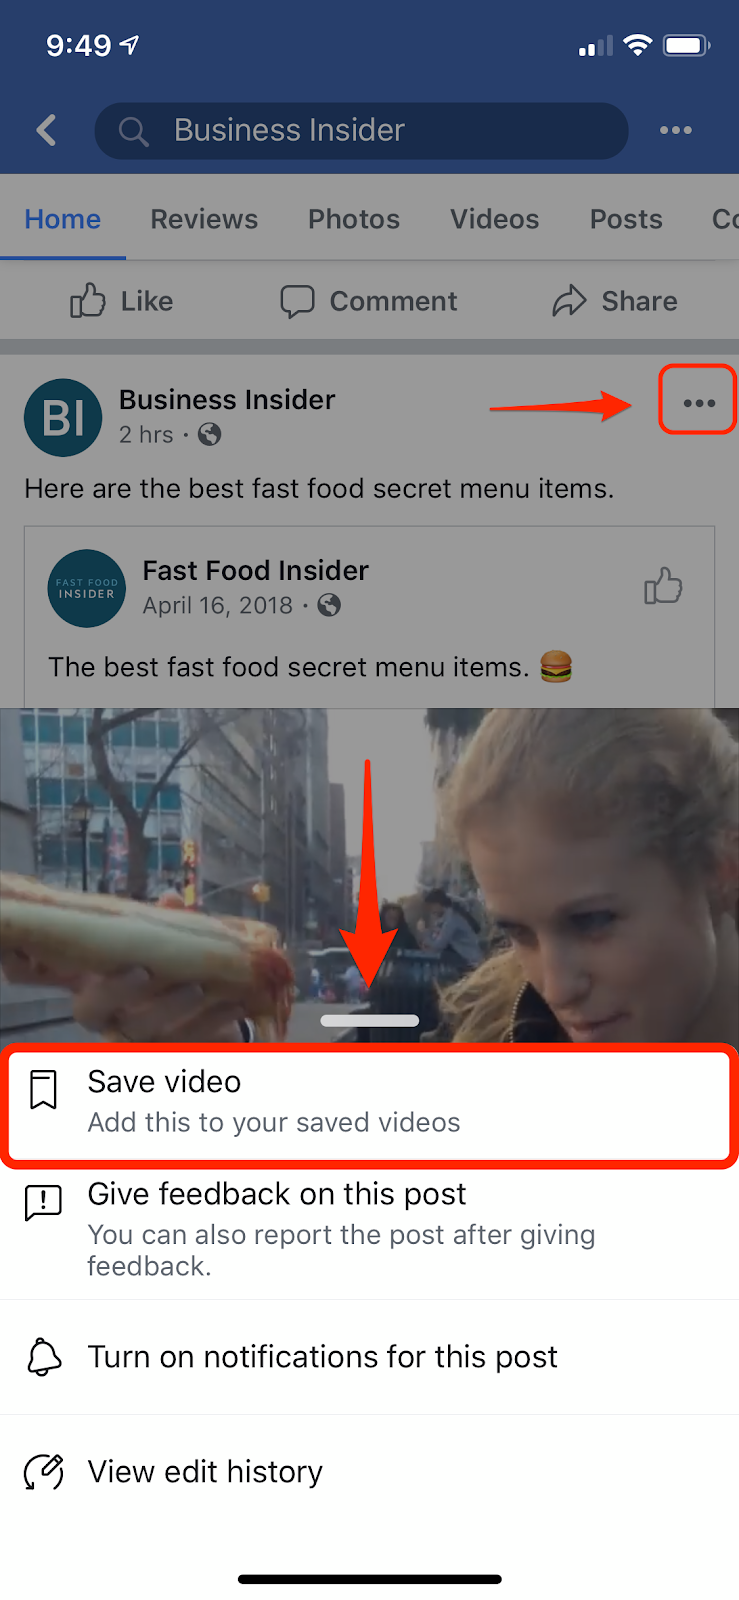 Tap the three dots at the top of the video post in order to see the option to save it for later.